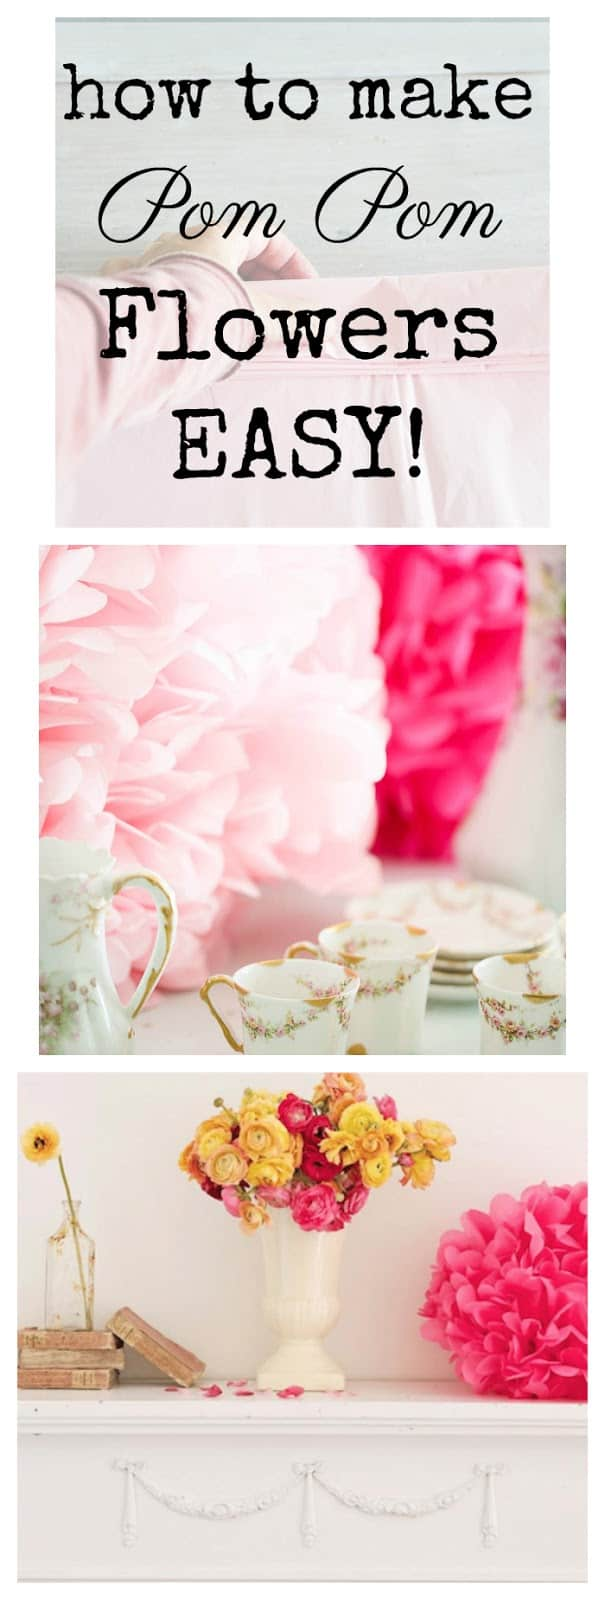 Tissue paper crafts make some pom poms shabbyfufu how to make tissue paper pom poms easy diy shabbyfufu pinterest mightylinksfo